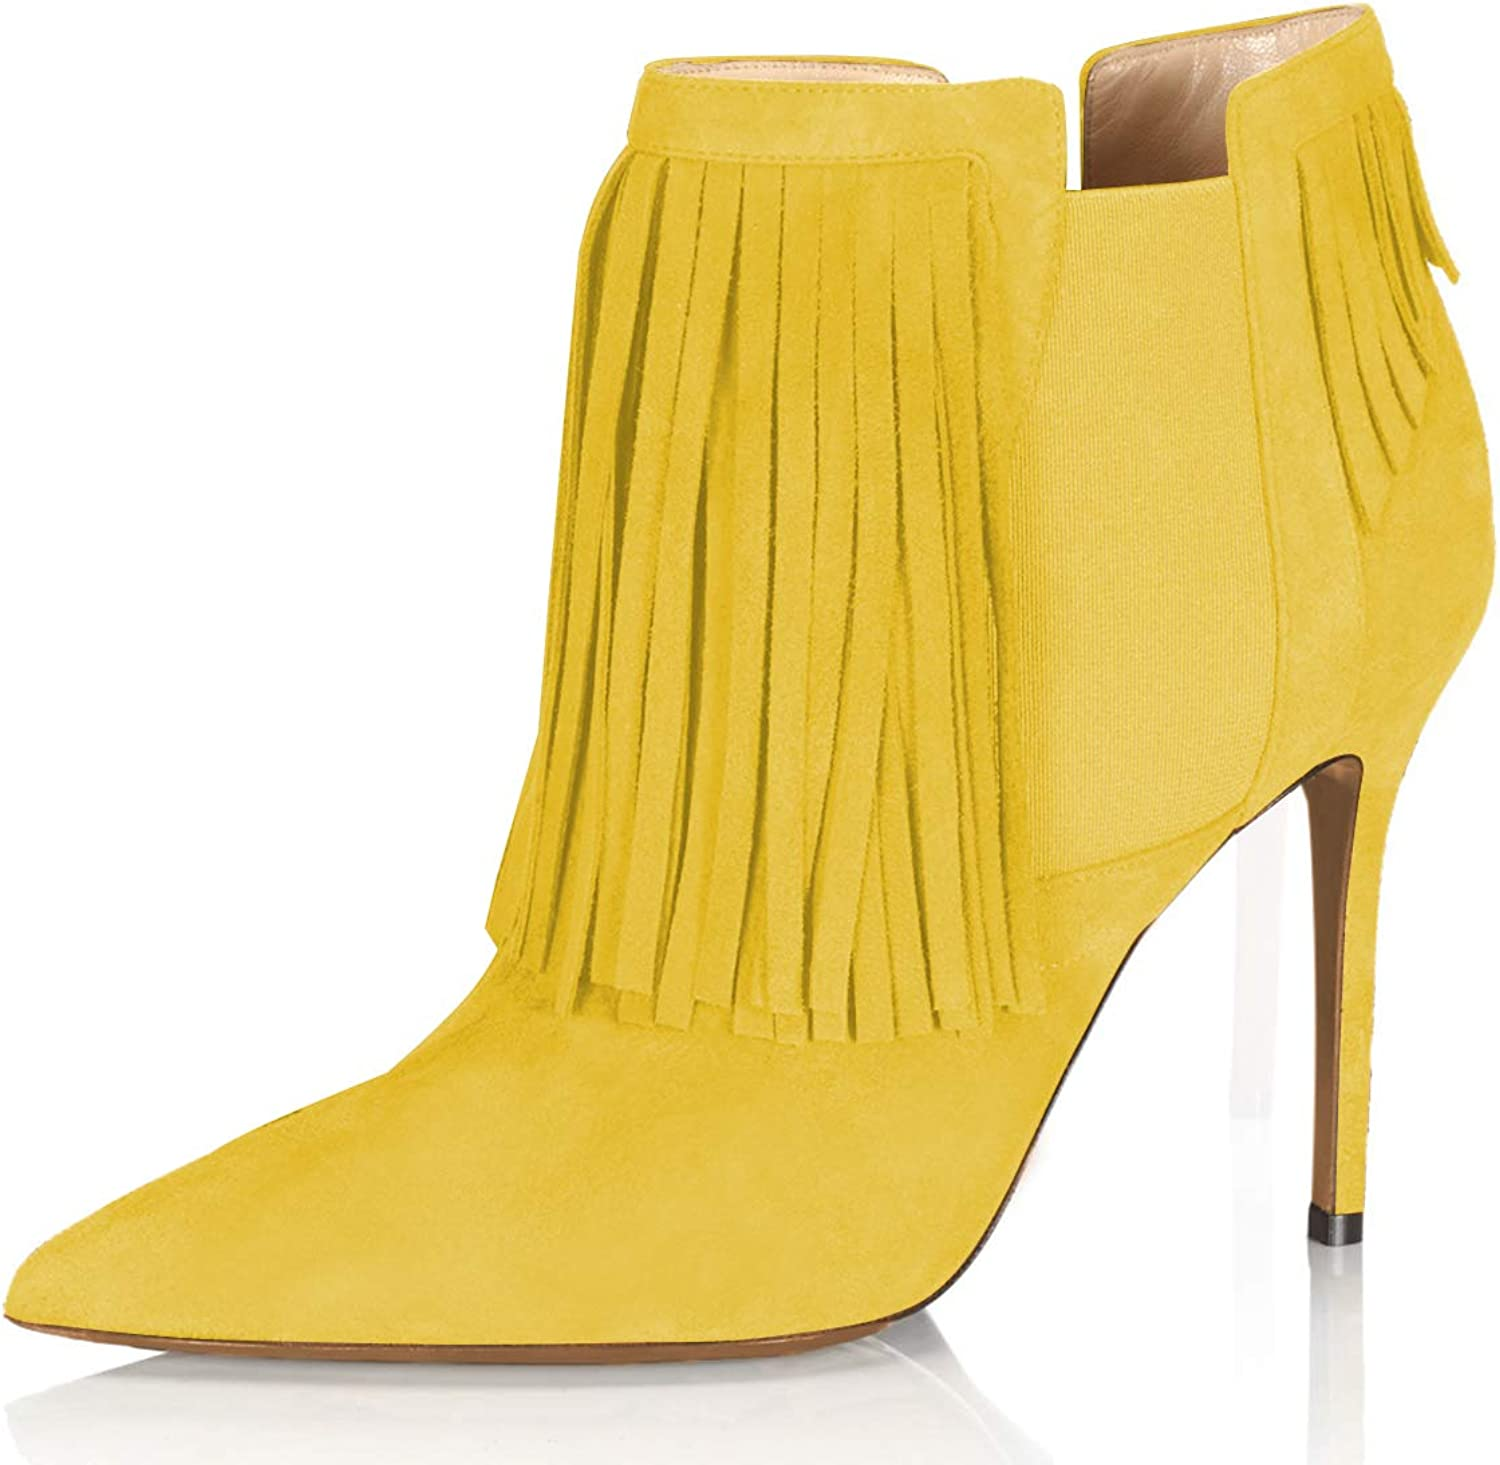 YDN Women Stiletto High Heel Tassels Ankle Boots Pointed Toe Elastic Pull On Suede Dress Bootie